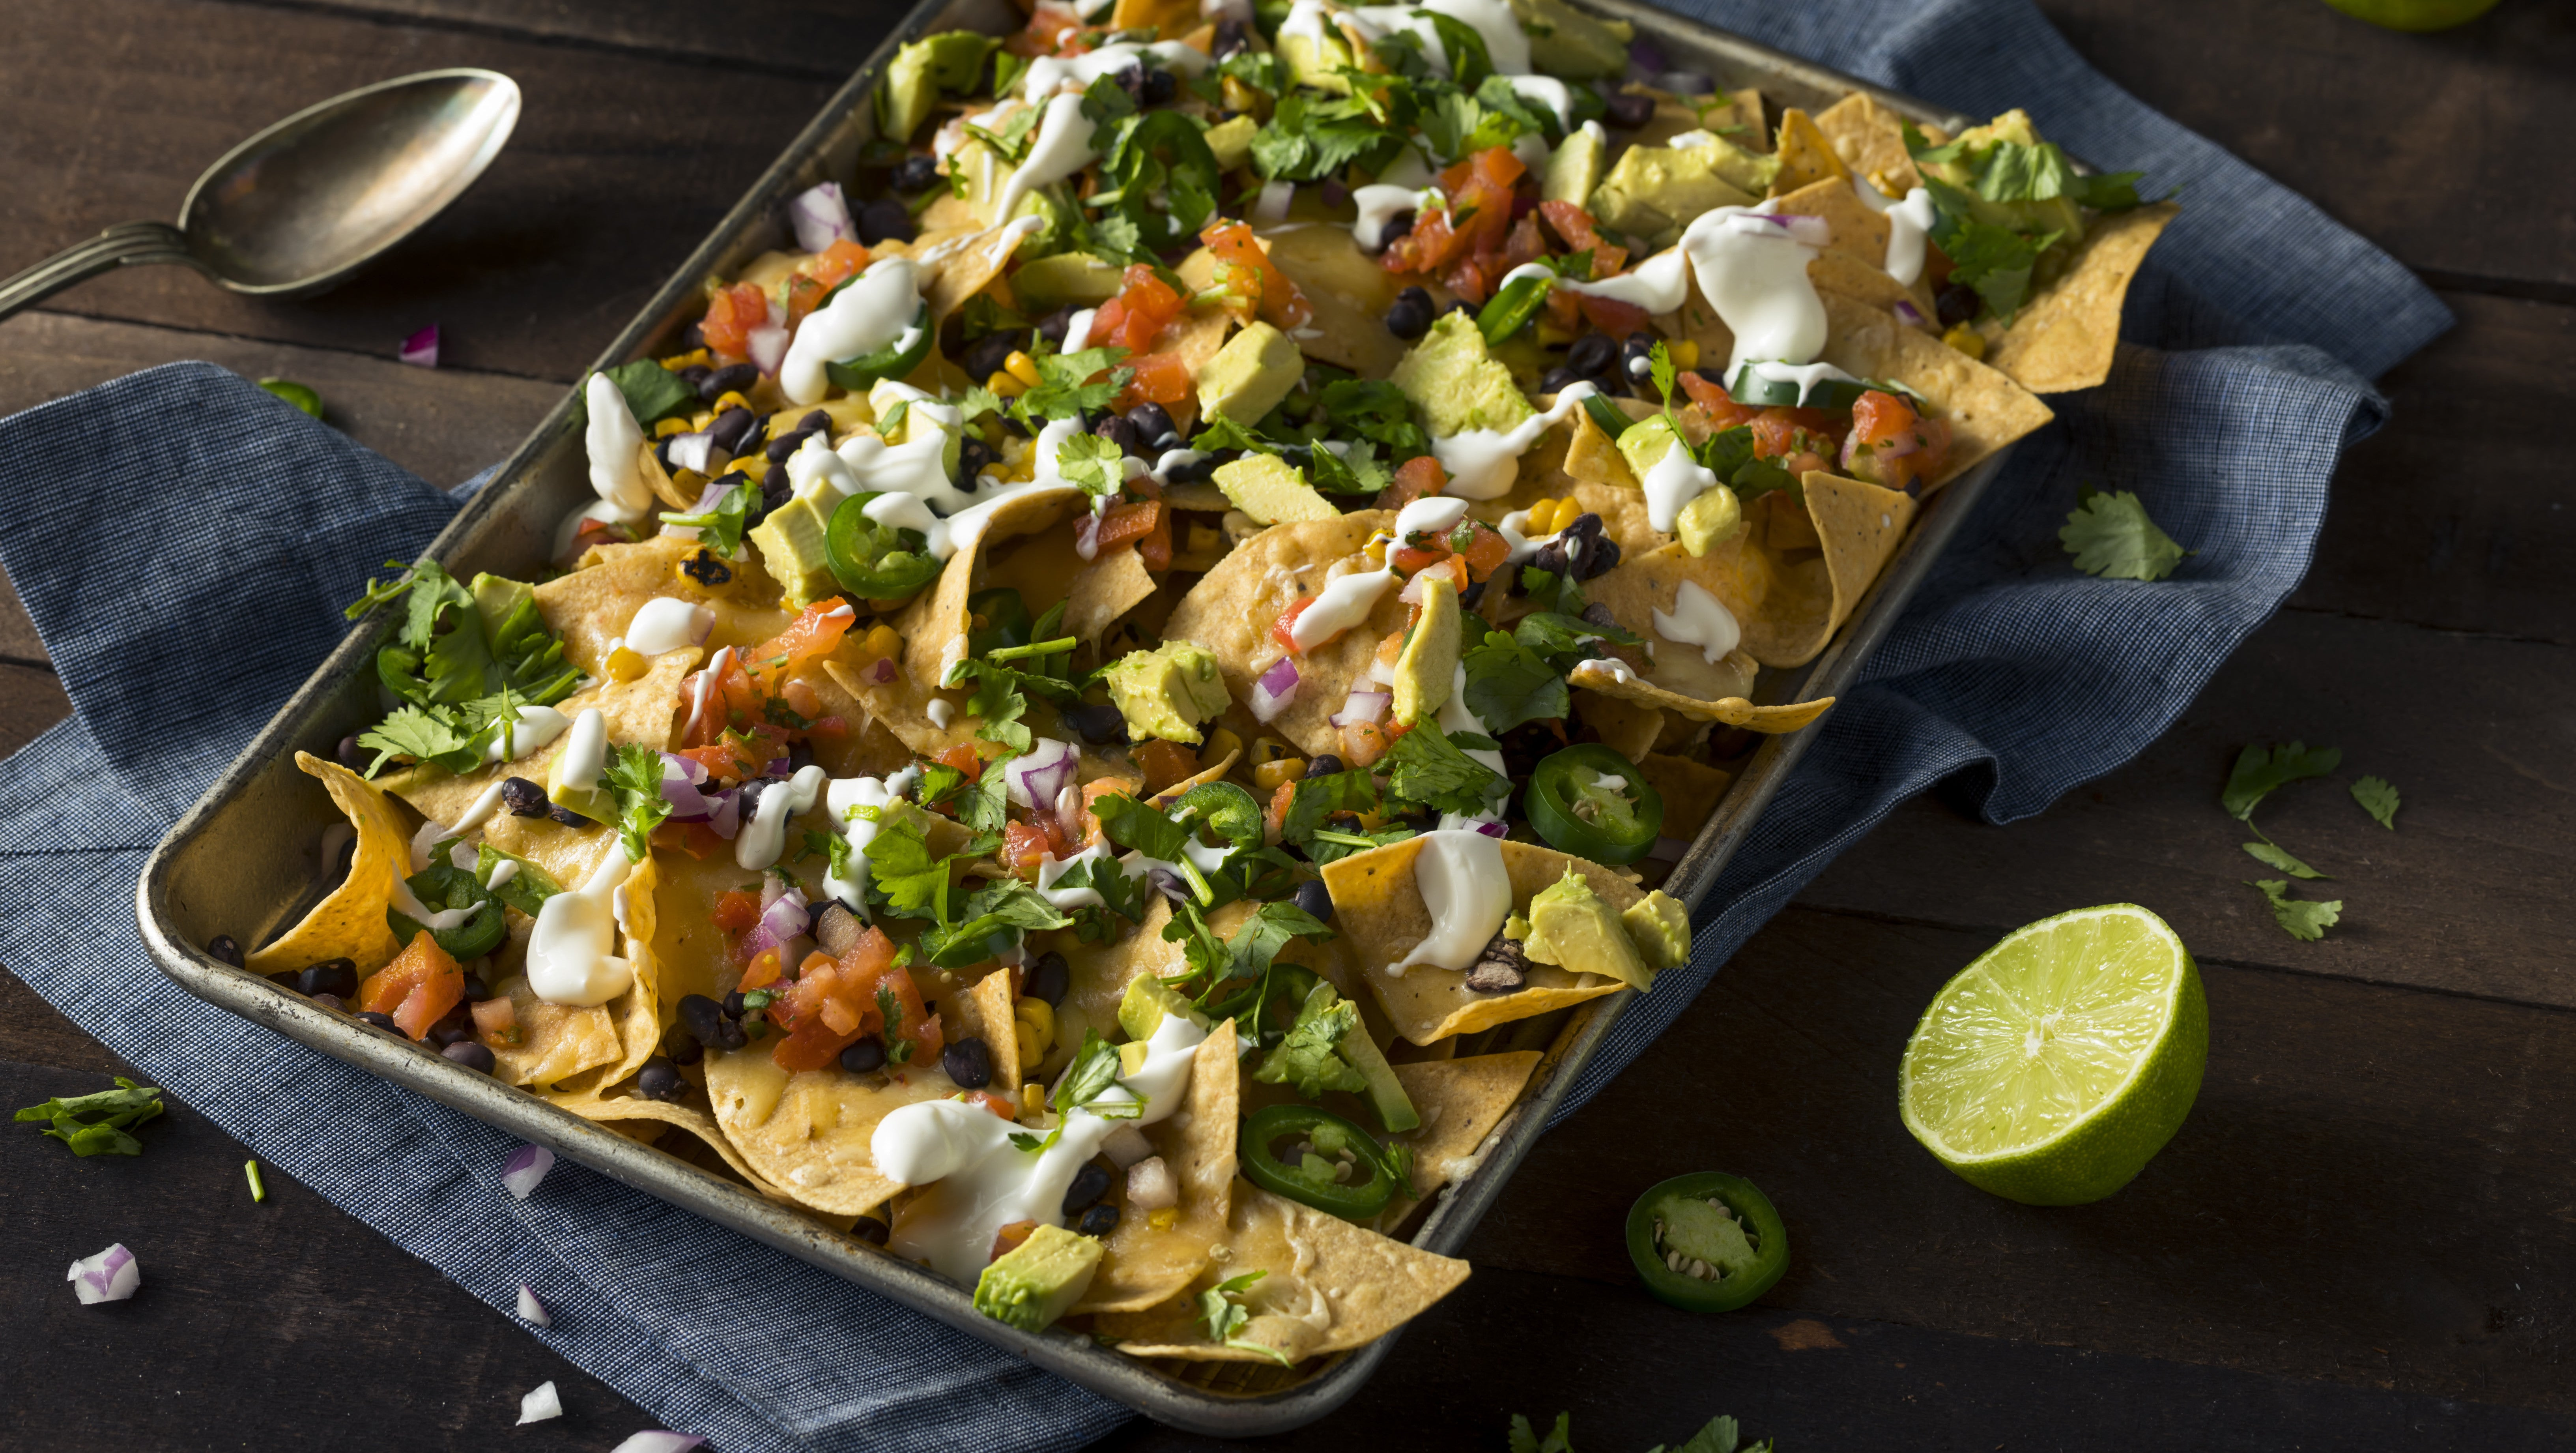 Pile Your Holiday Leftovers On Nachos